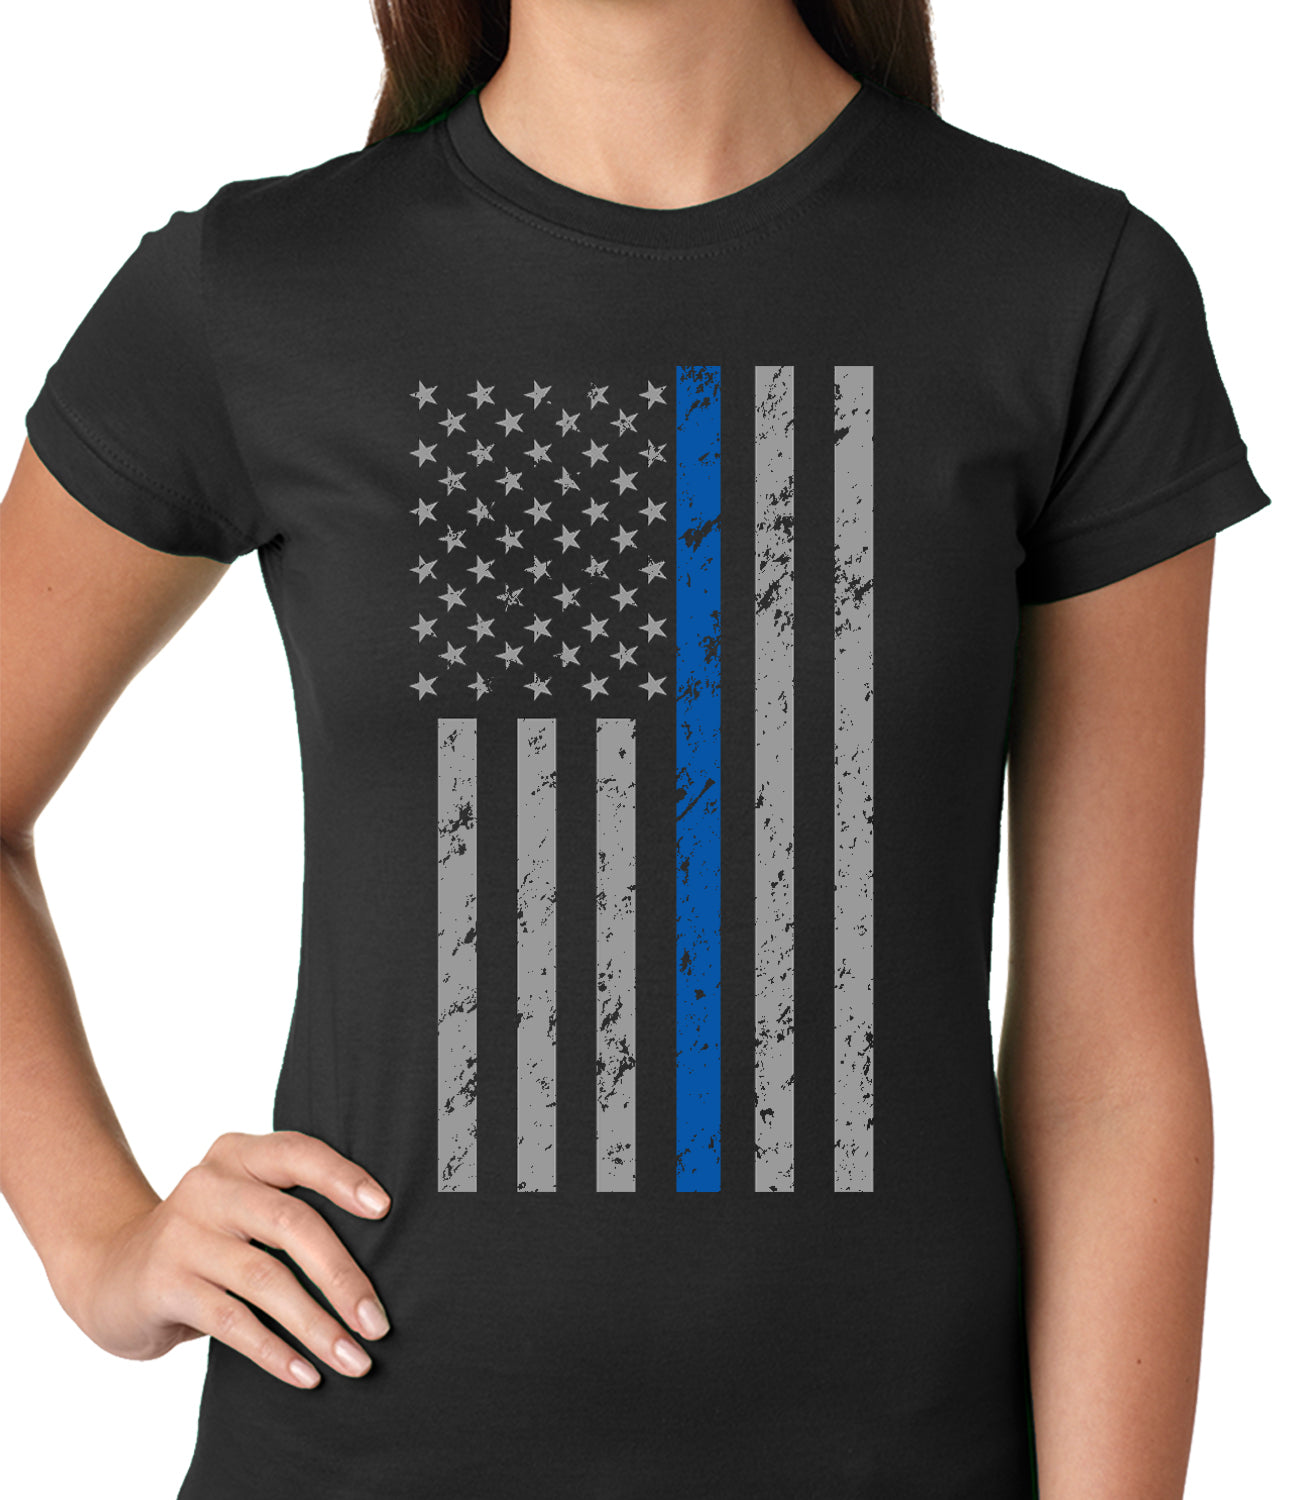 Police Thin Blue Line American Flag - Support Police Department Ladies T-shirt